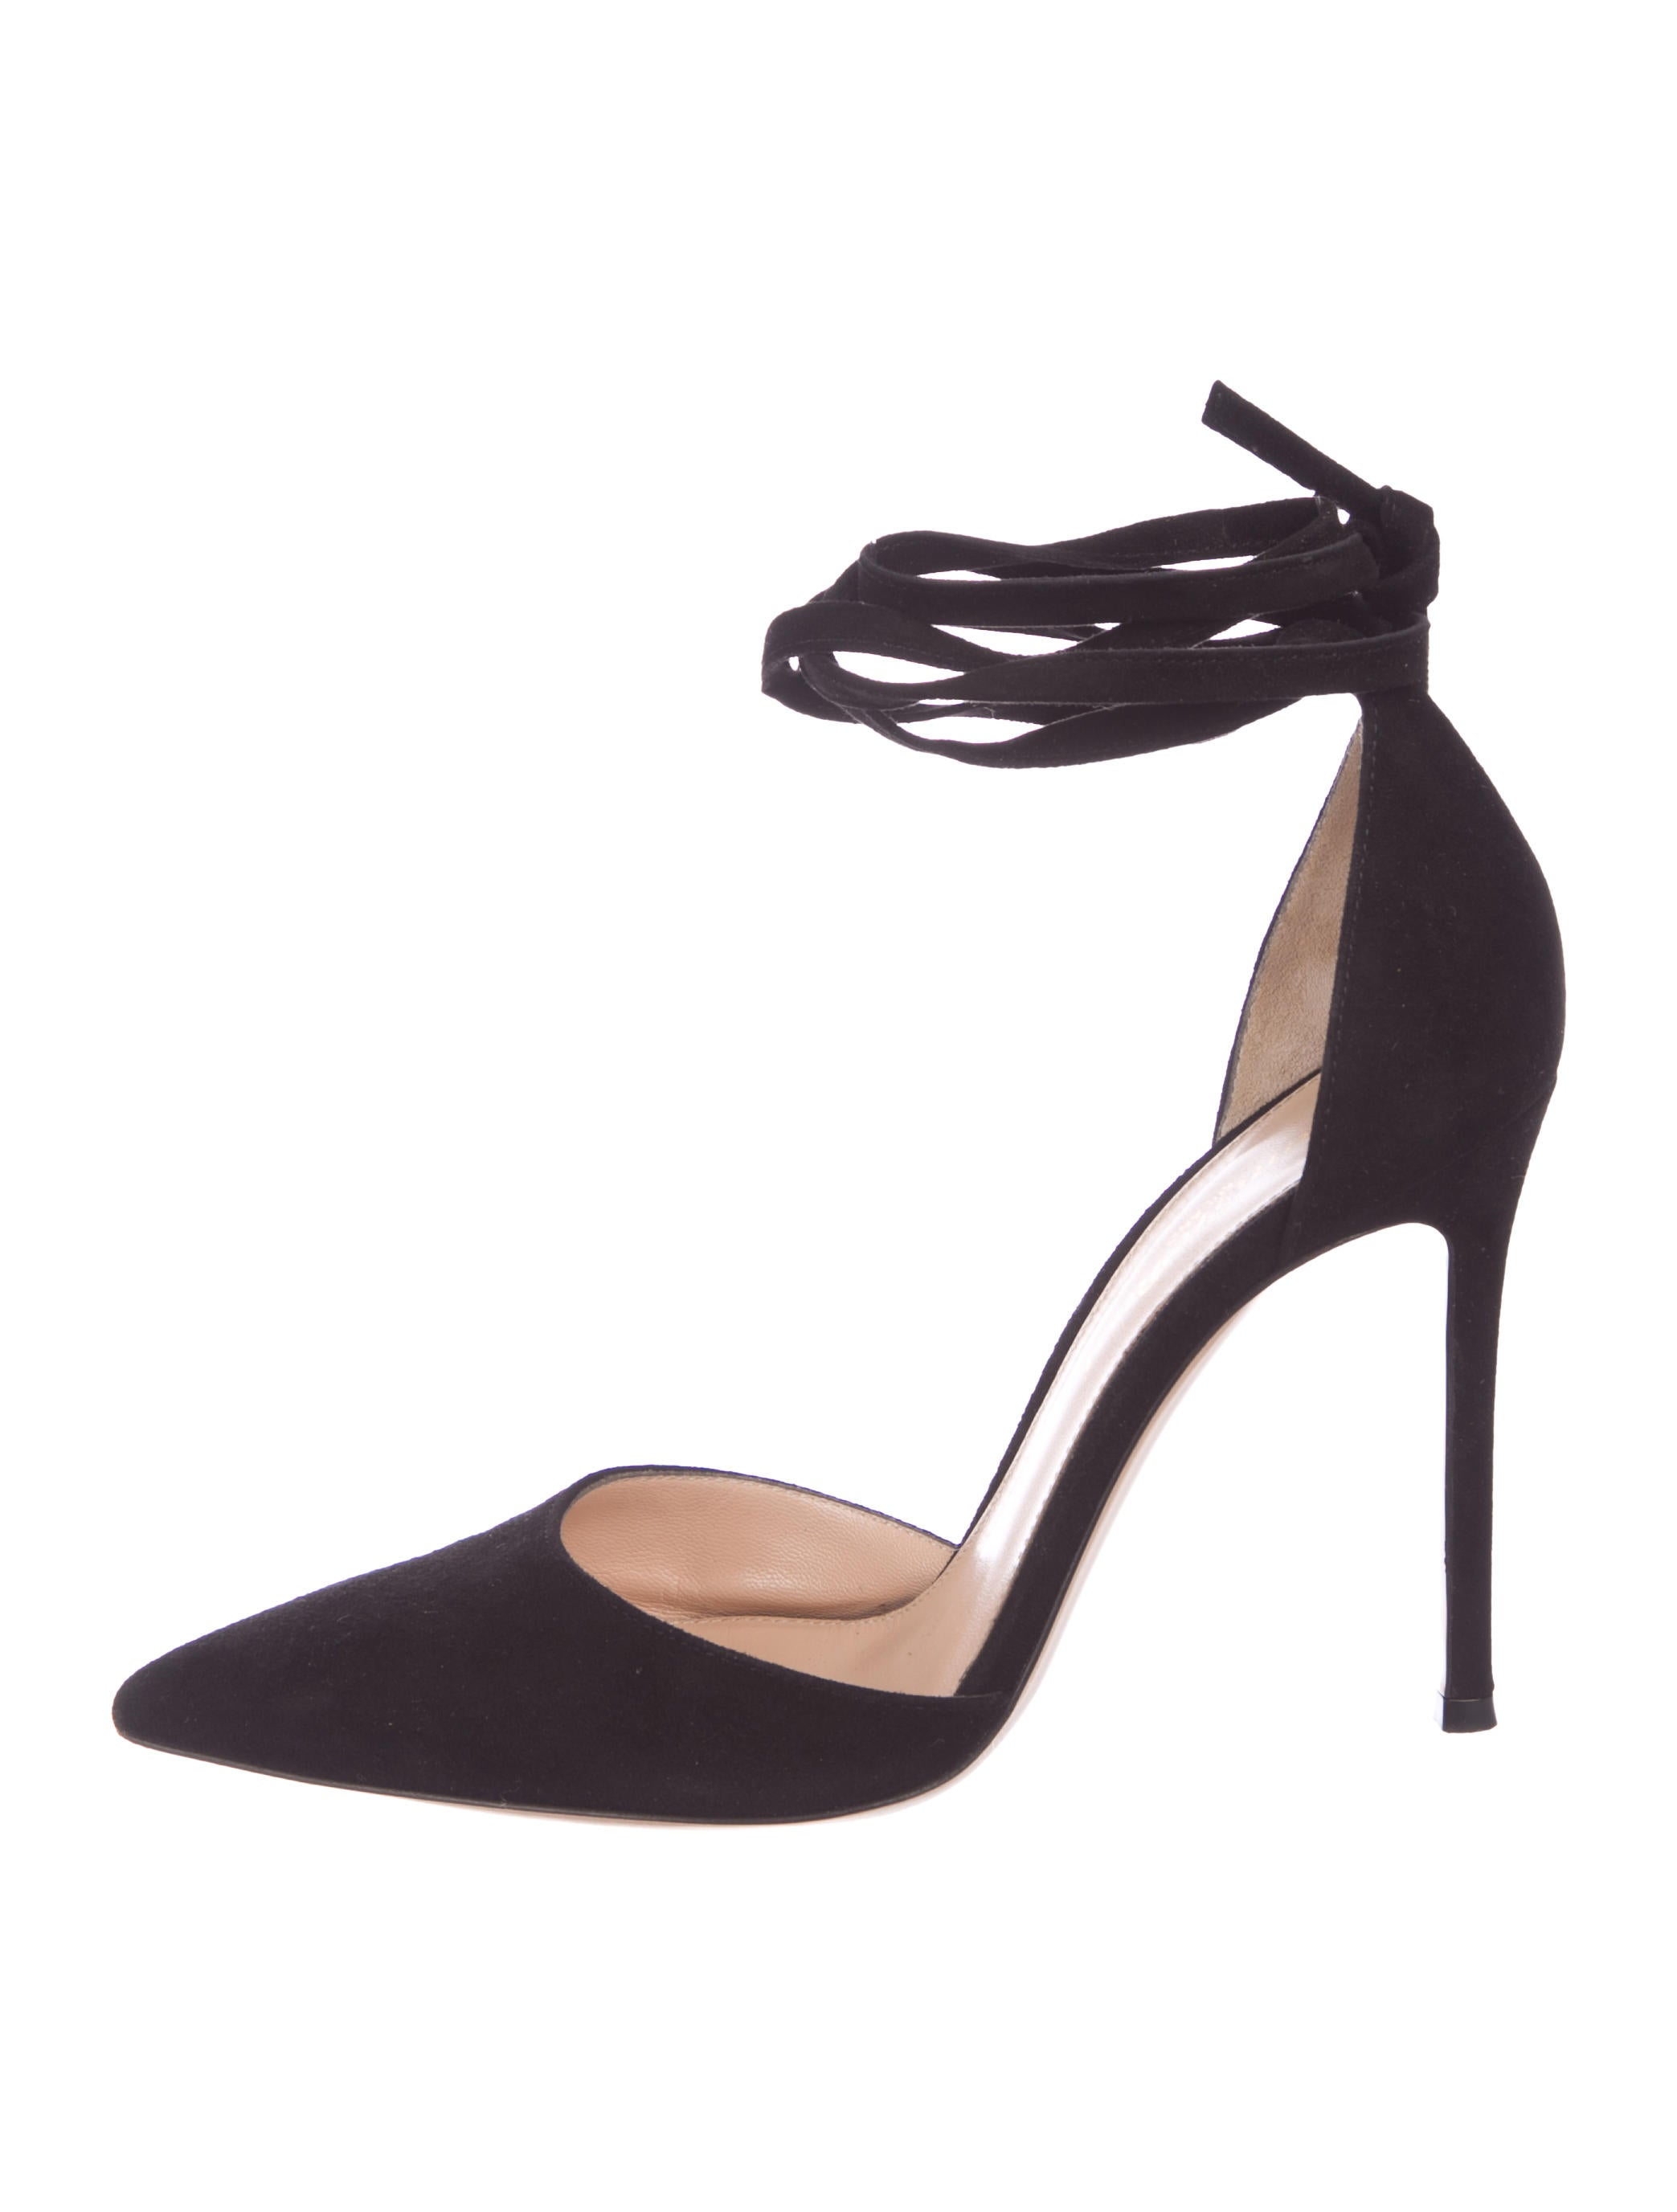 f19bff729 Gianvito Rossi Suede Pointed-Toe Pumps - Shoes - GIT31020 | The RealReal